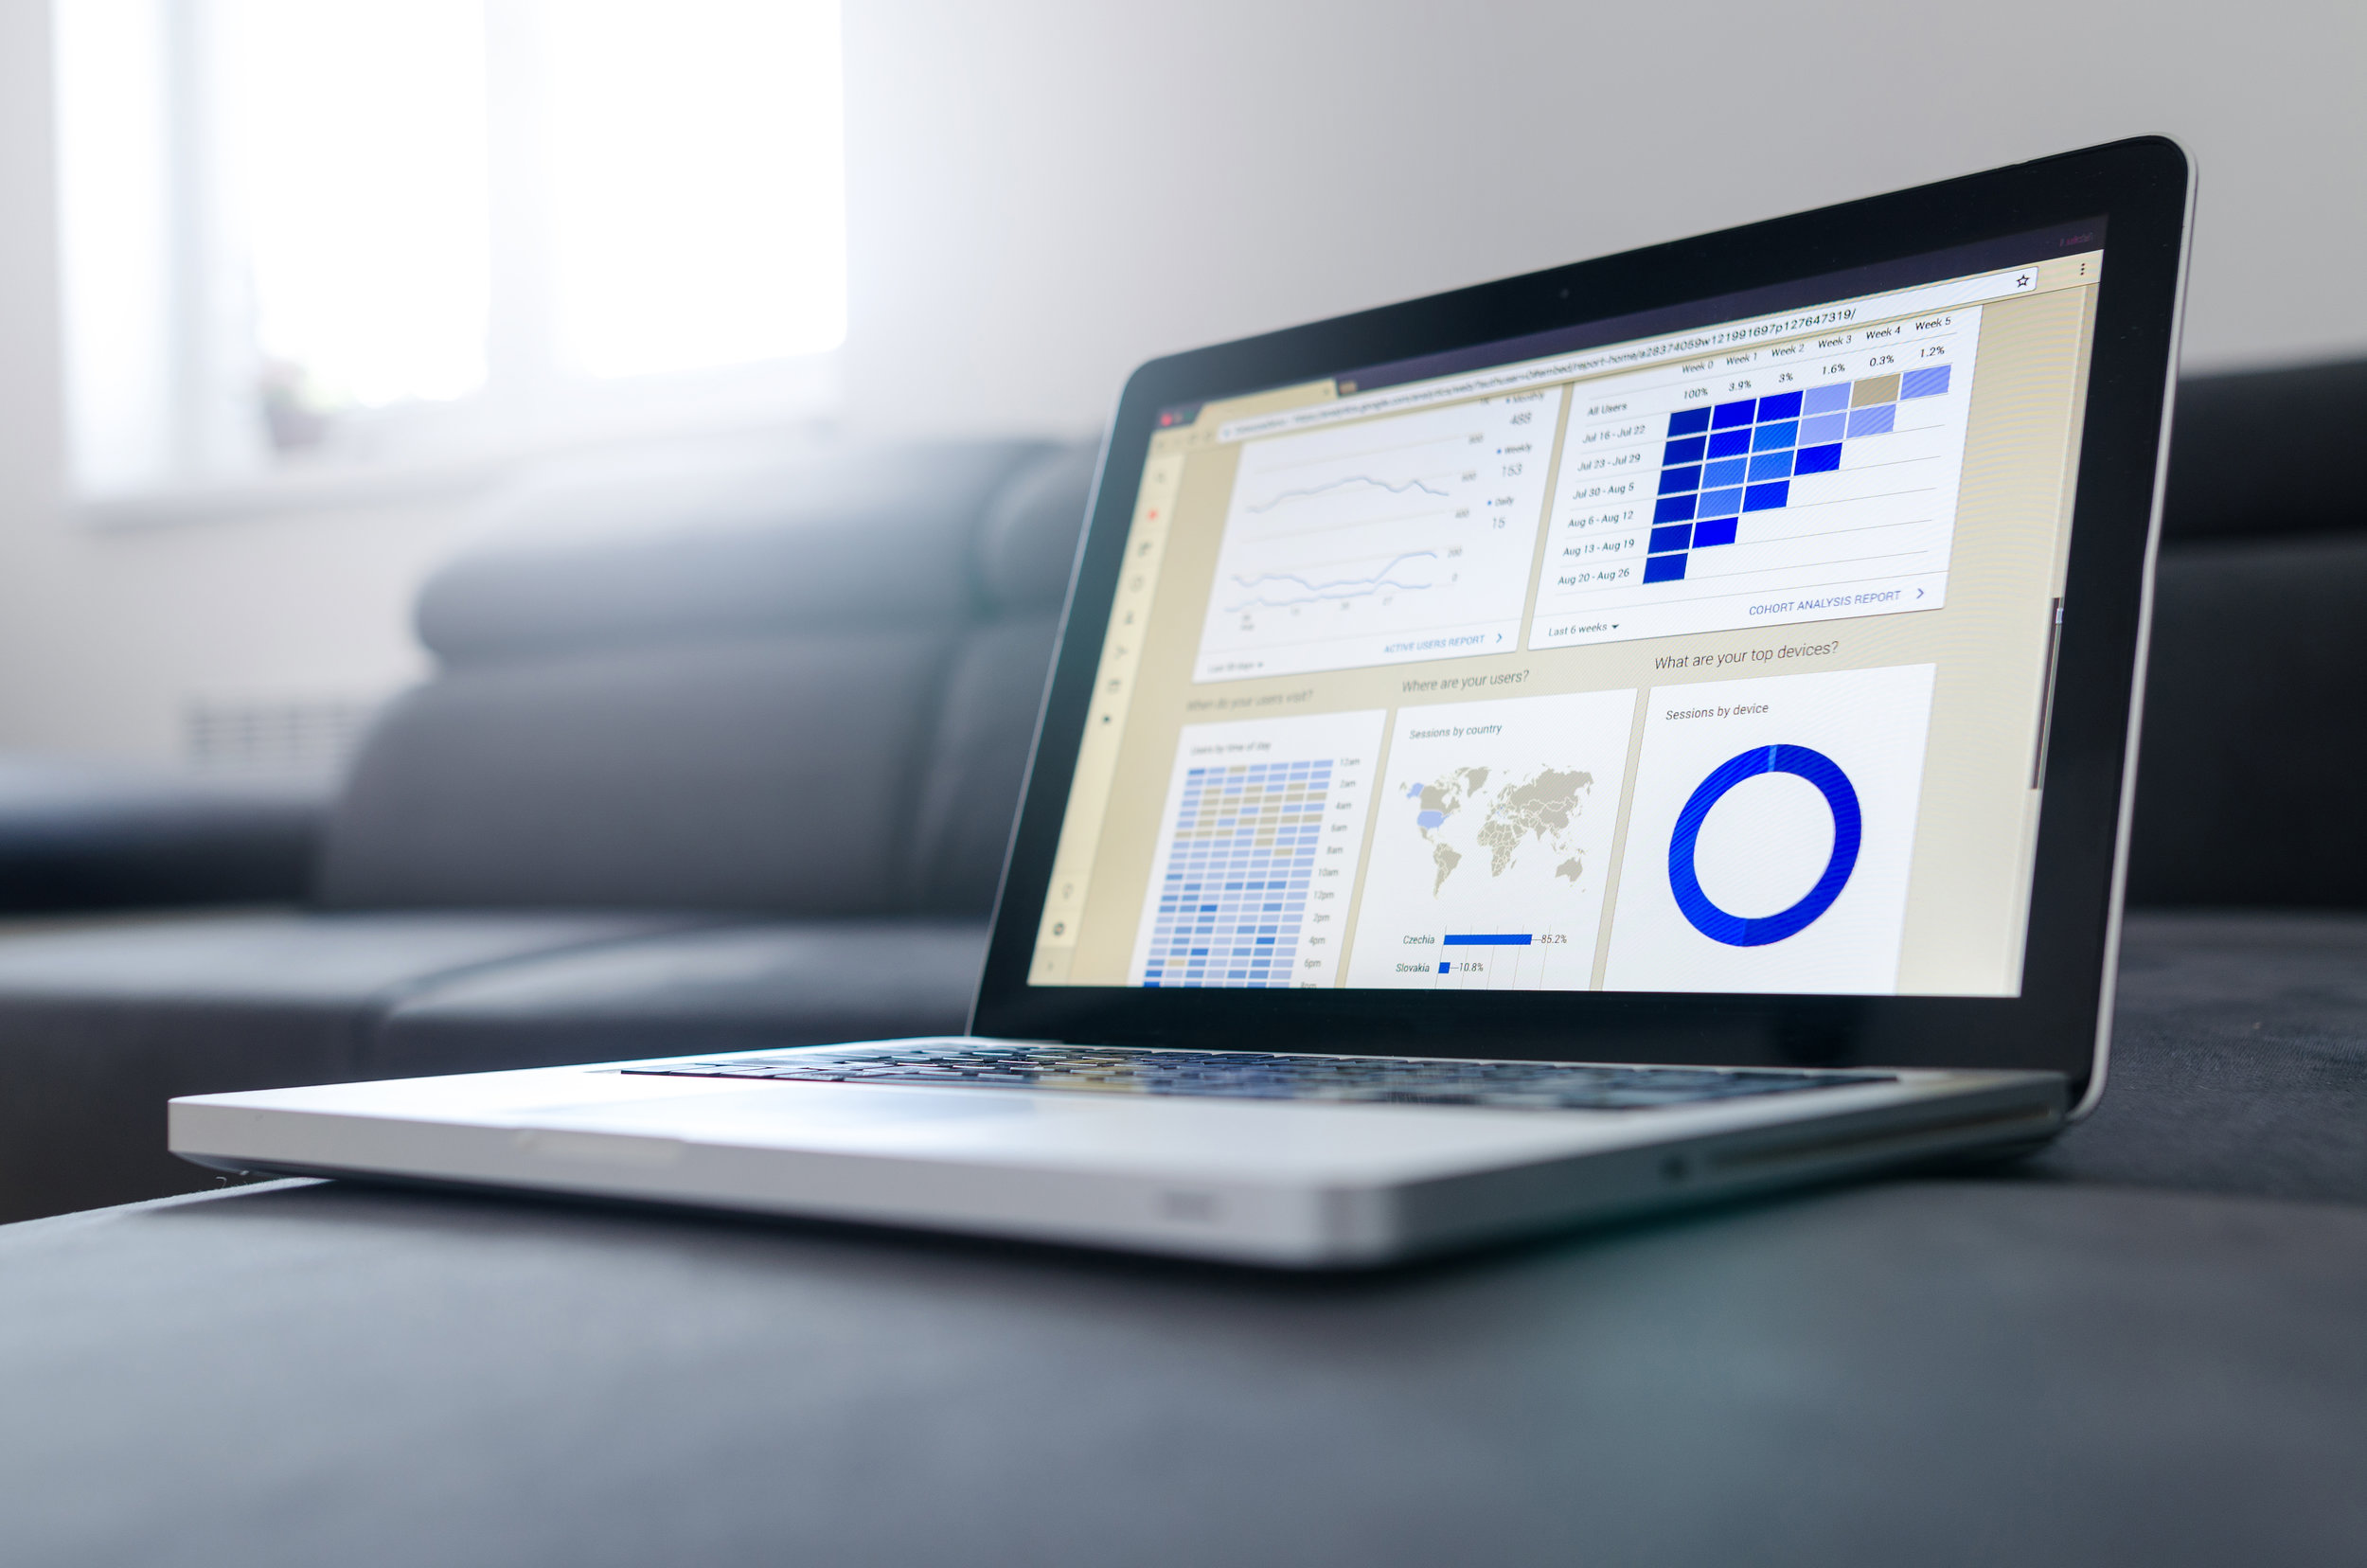 Attribution & Spend Analysis - Your business should be able to identify the impact of every piece of content and campaign you run. We know the tools and tactics for managing a full-fledged cross-channel attribution program.